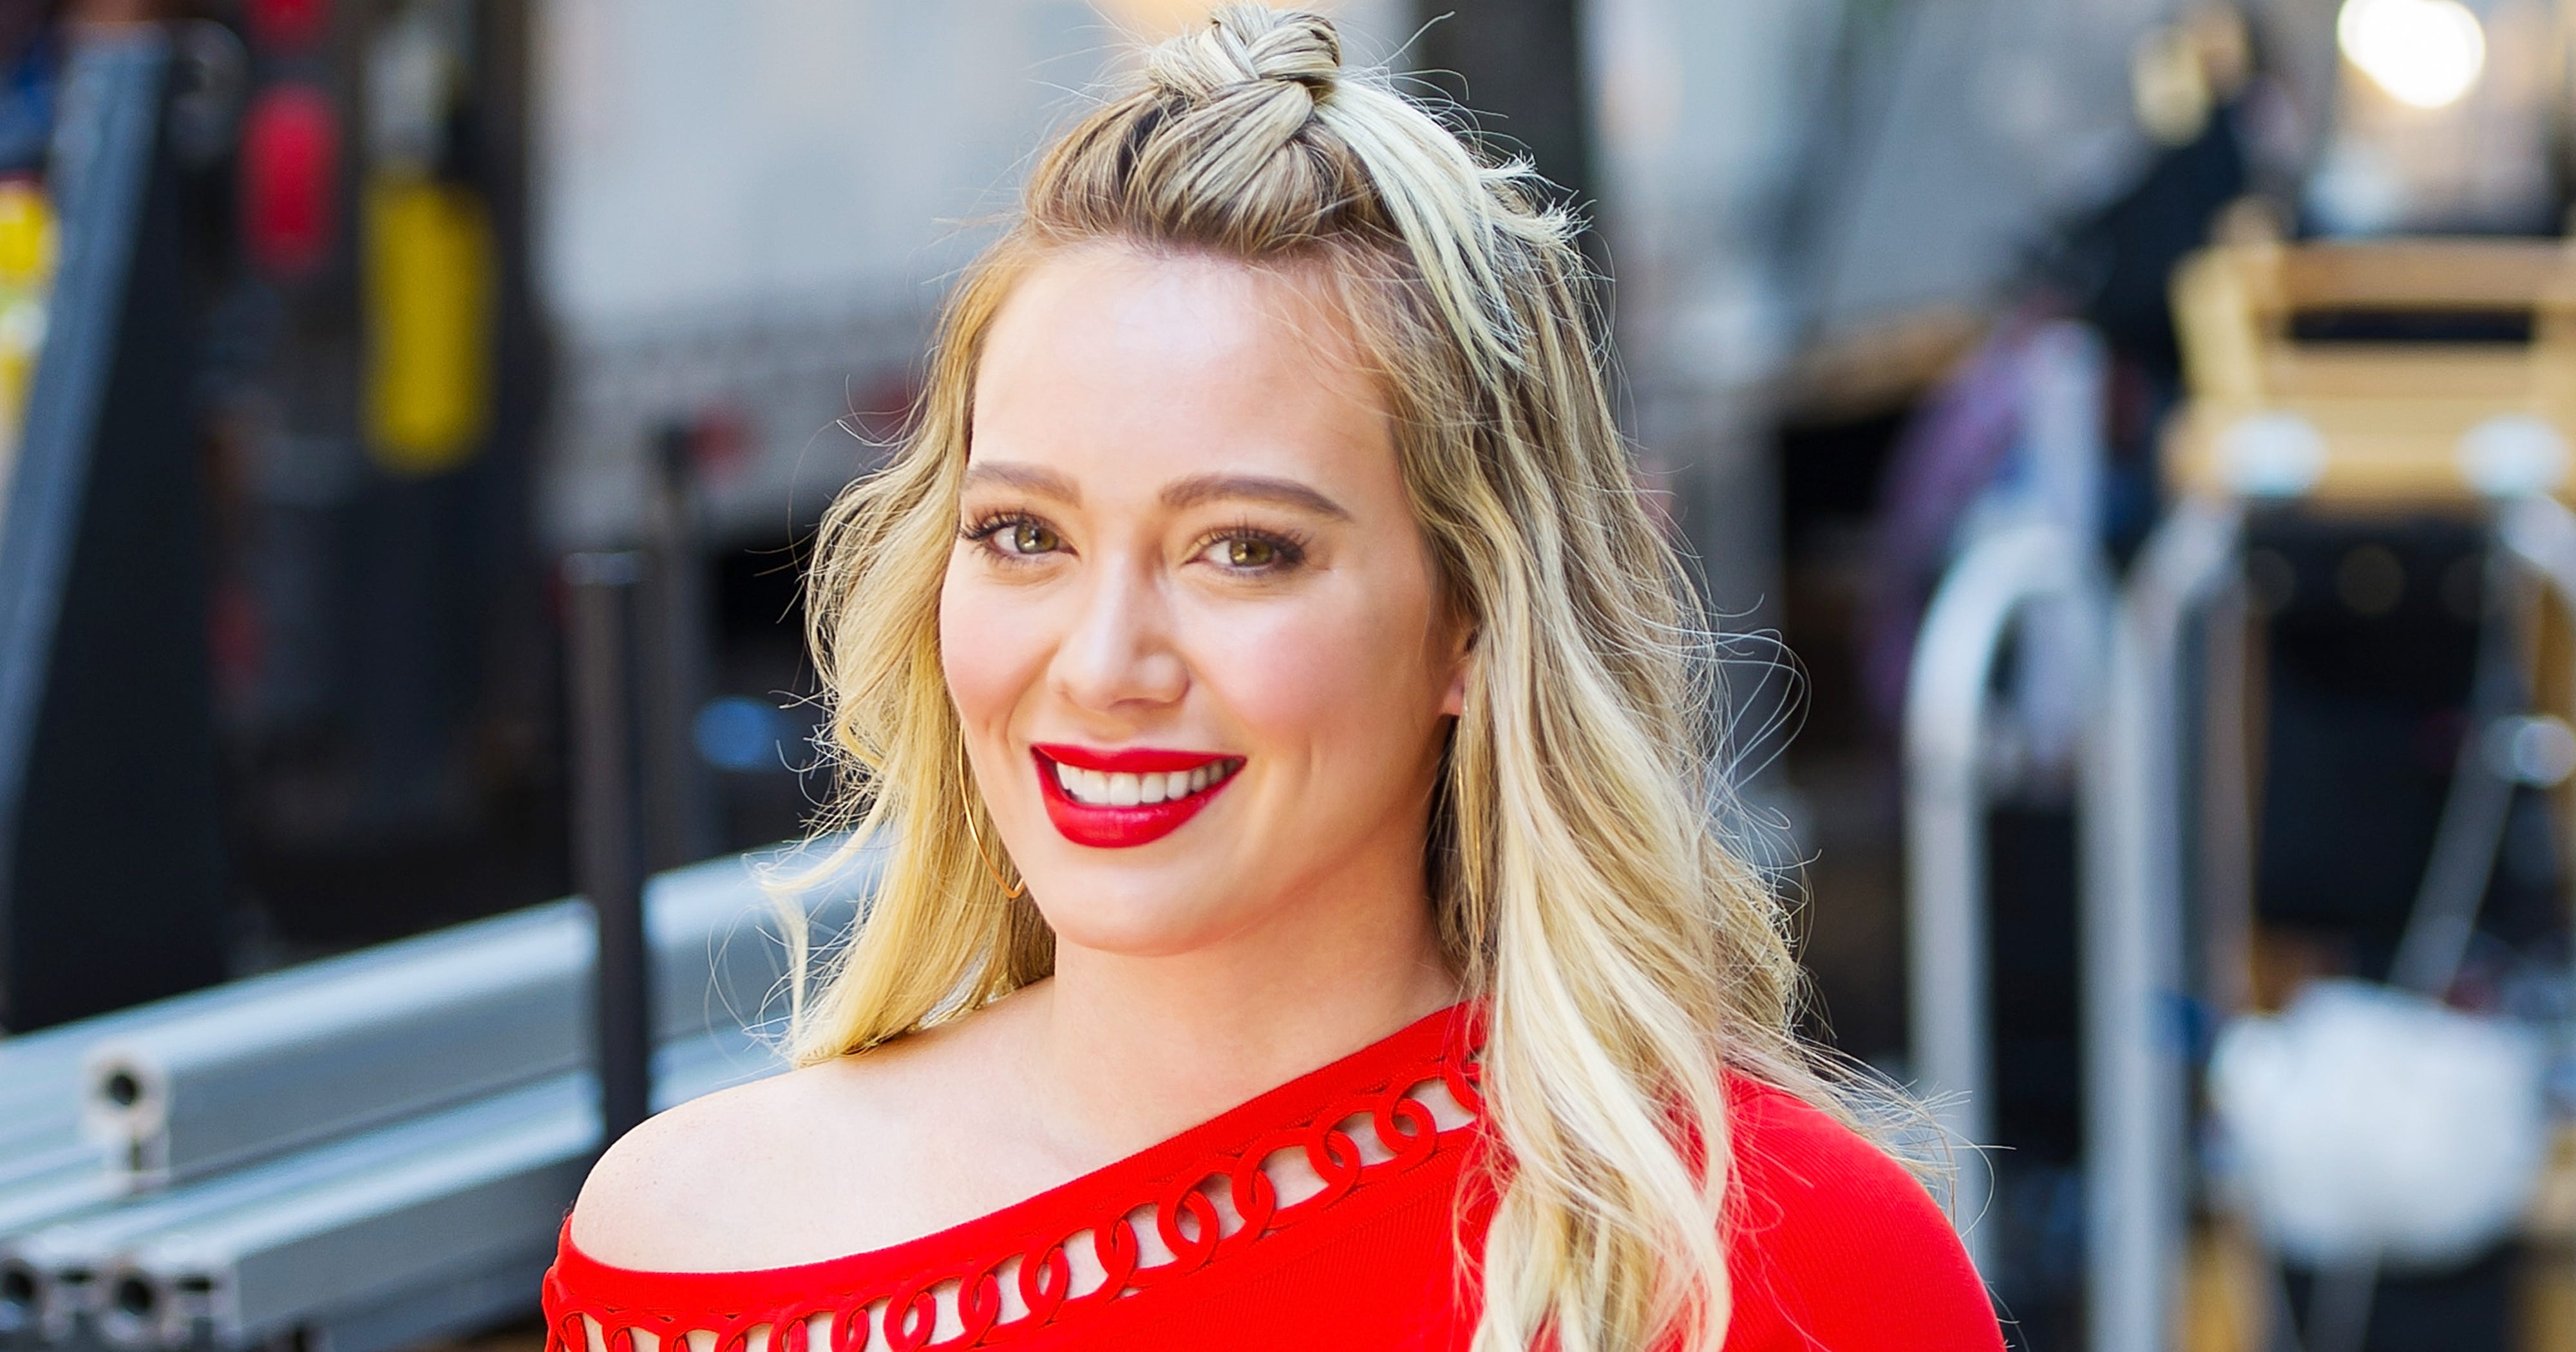 Hilary Duff Is Dragging Her Neighbor On Instagram Stories